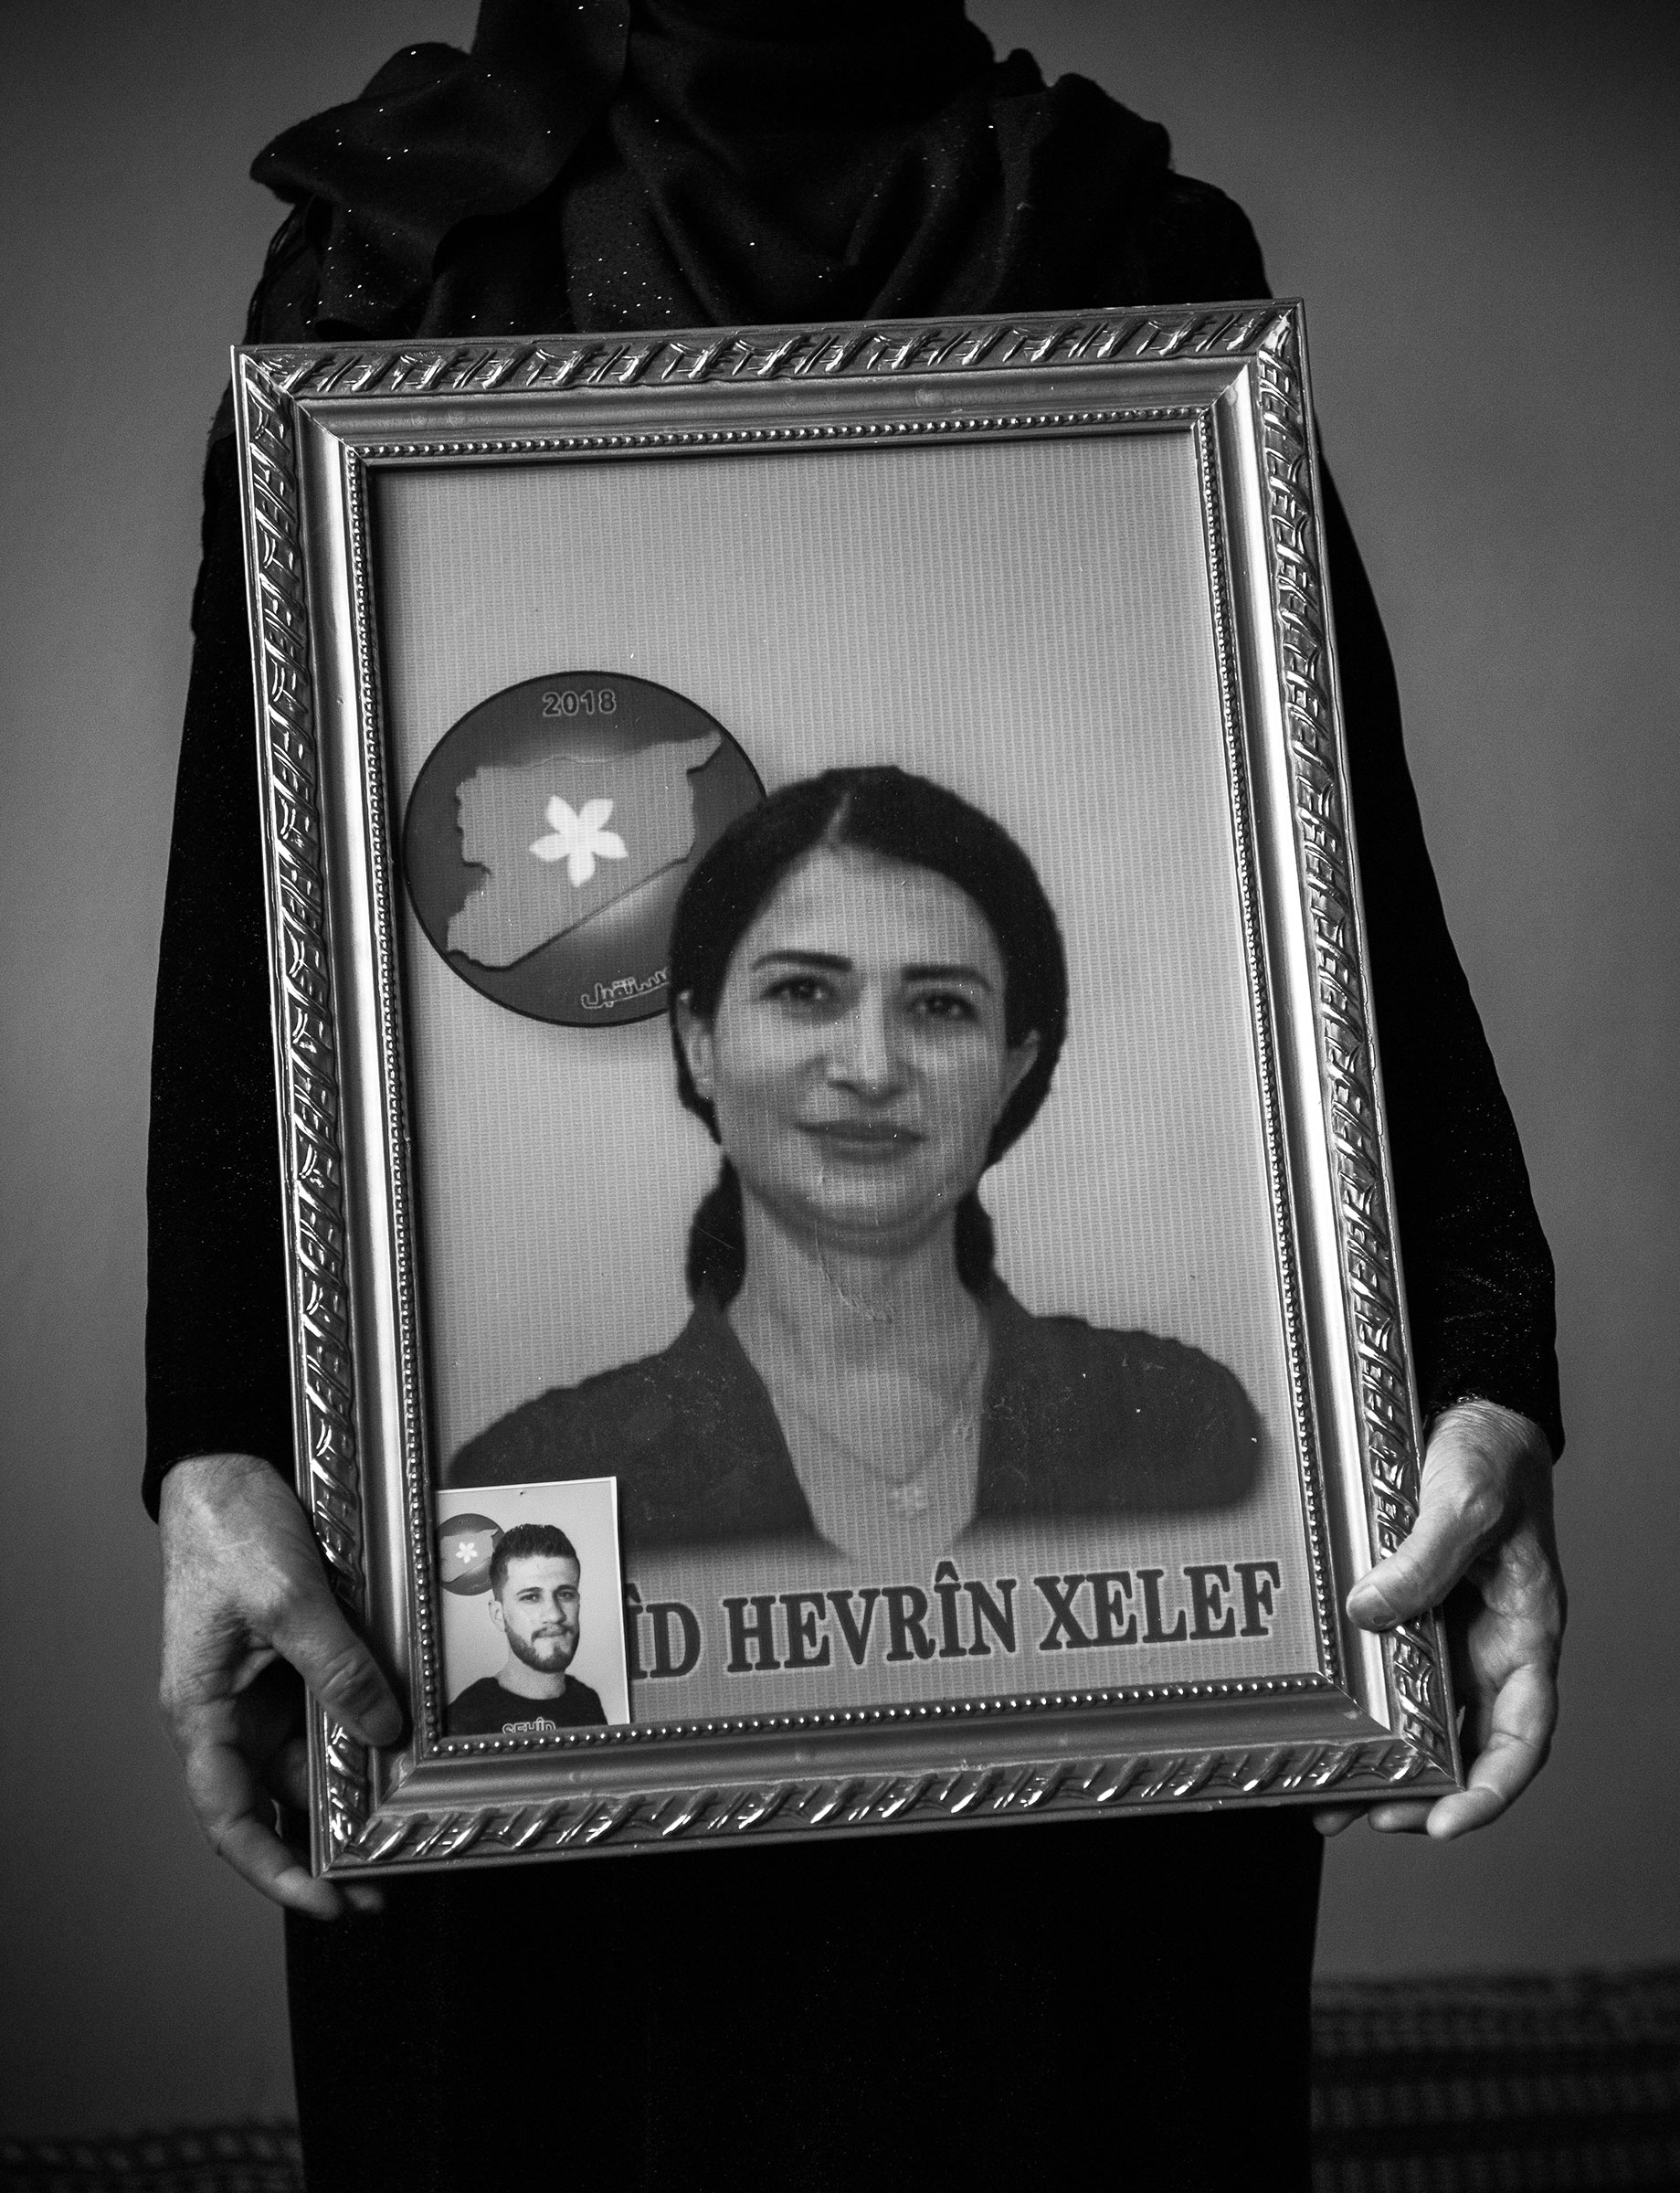 The mother of Hevrin Khalaf poses for a portrait at her house in Al-Malikiyah (or Derik as it's known to Kurds), Syria on October 20, 2019. Hevrin Khalaf and her driver were assassinated by Turkish-backed Syrian militants on October 12th while driving on the M4 highway in northeastern Syria. She was a Syrian Kurdish political leader of the Future Syria Party.